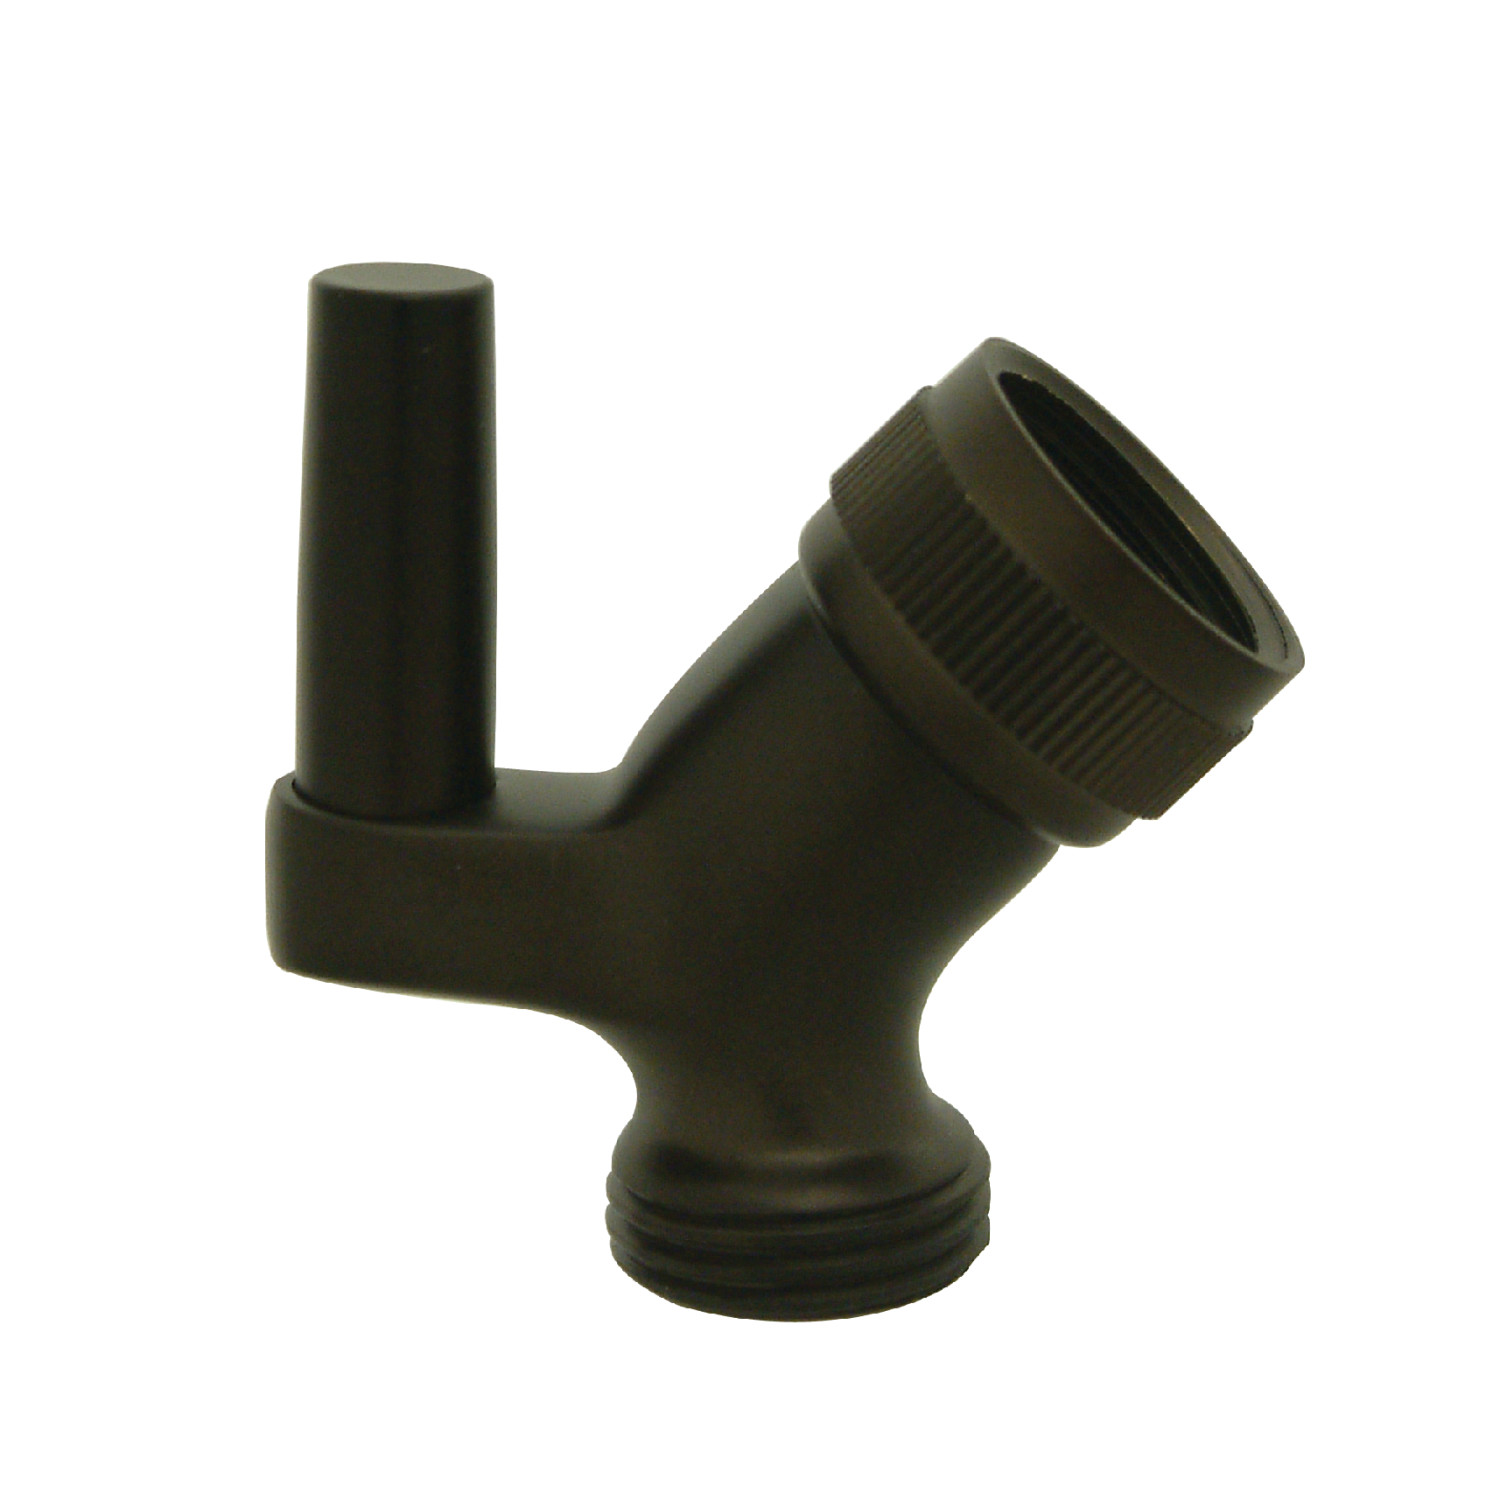 Elements Of Design Dk179a5 Handheld Shower Pin Wall Hook With Hose Outlet Oil Rubbed Bronze